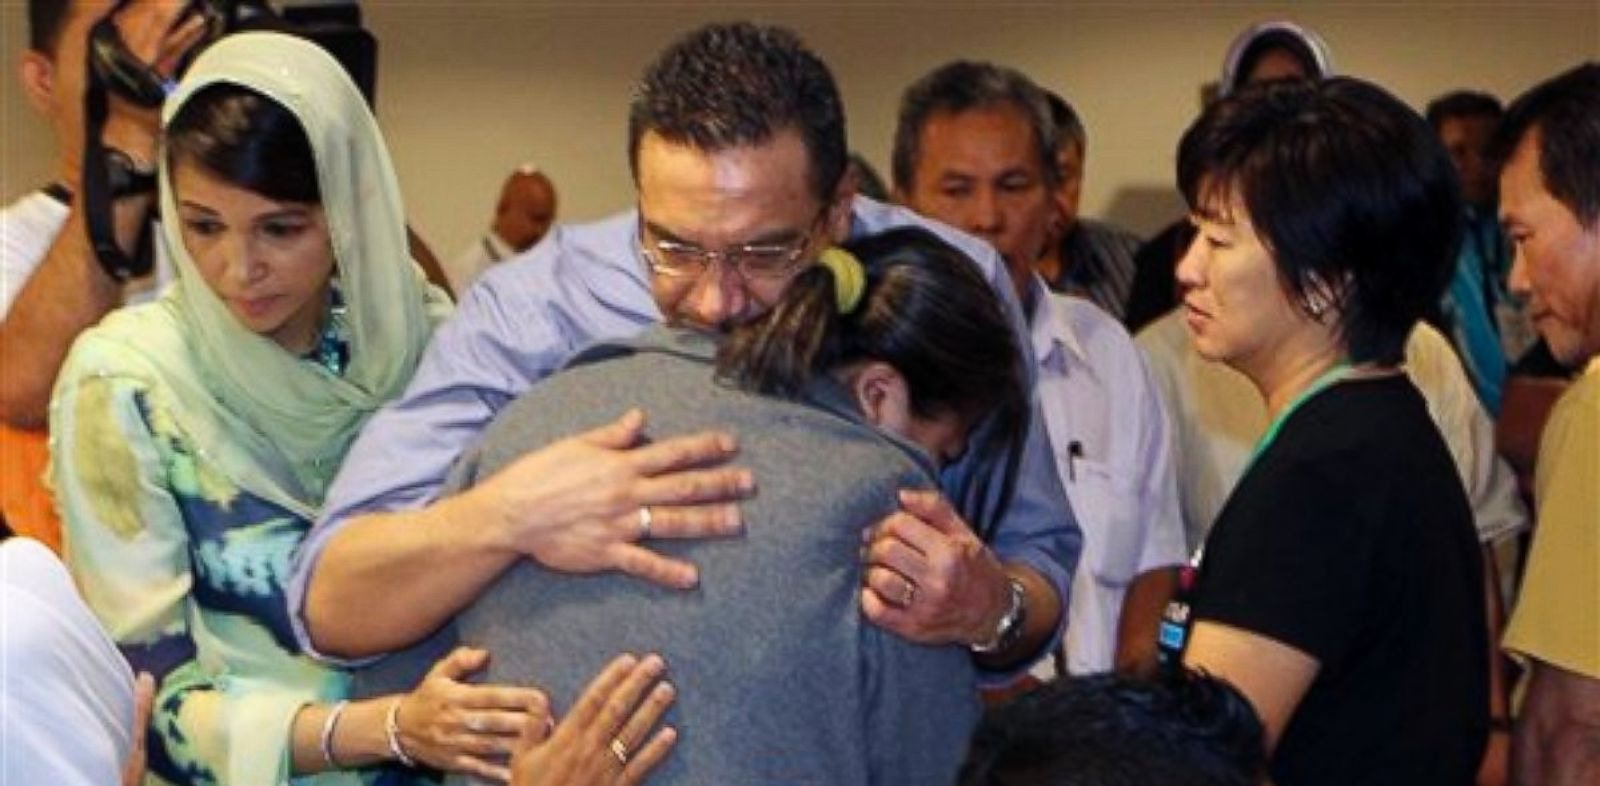 PHOTO: Malaysias acting Transport Minister Hishammuddin Hussein, center, comforts a relative of passengers on board the missing Malaysia Airlines flight MH370 at a hotel in Putrajaya, Malaysia, Saturday March 29, 2014.